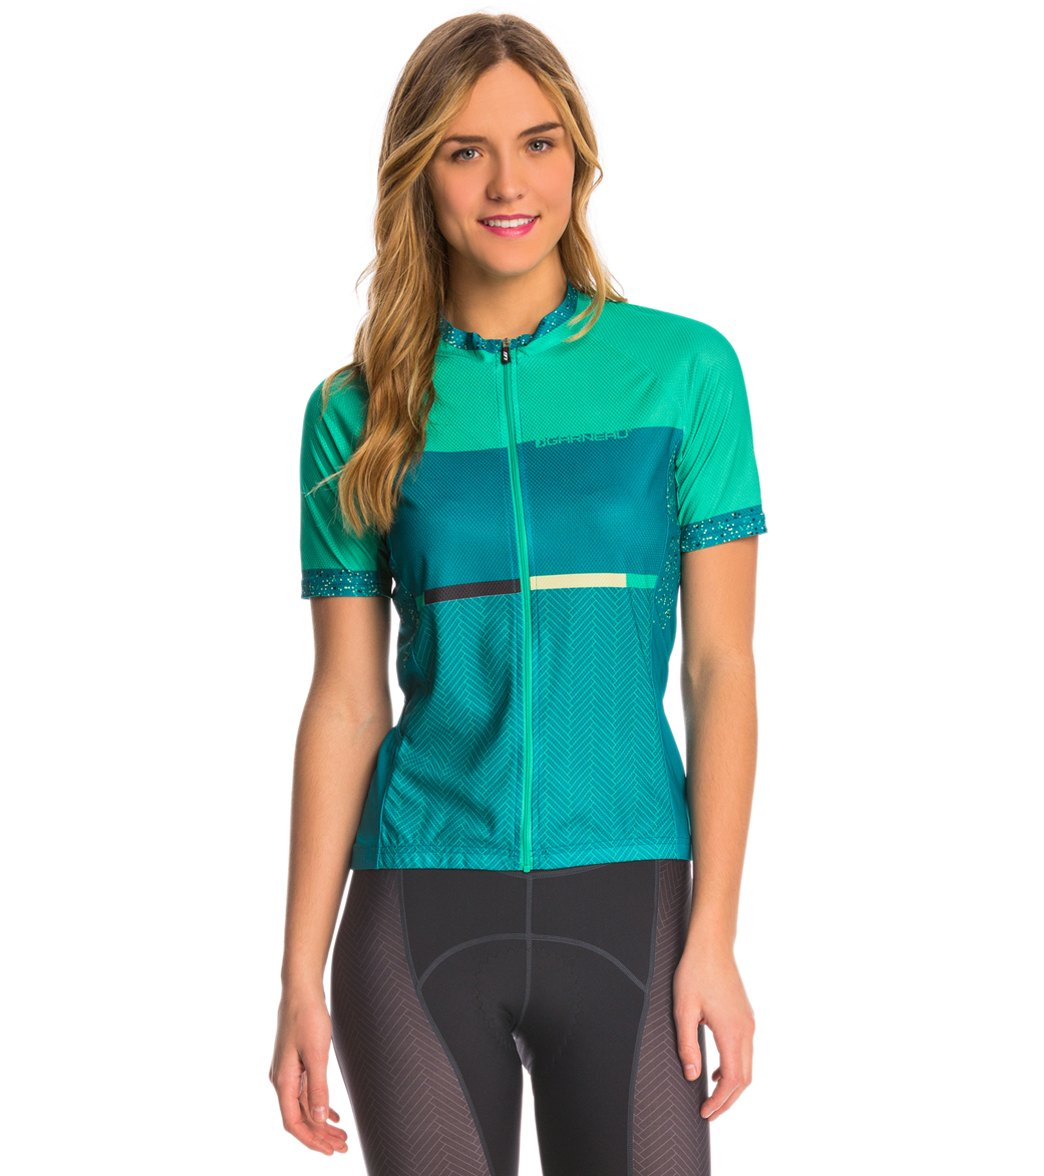 7b67af62d Louis Garneau Women s Equipe GT Series Cycling Jersey at SwimOutlet.com -  Free Shipping